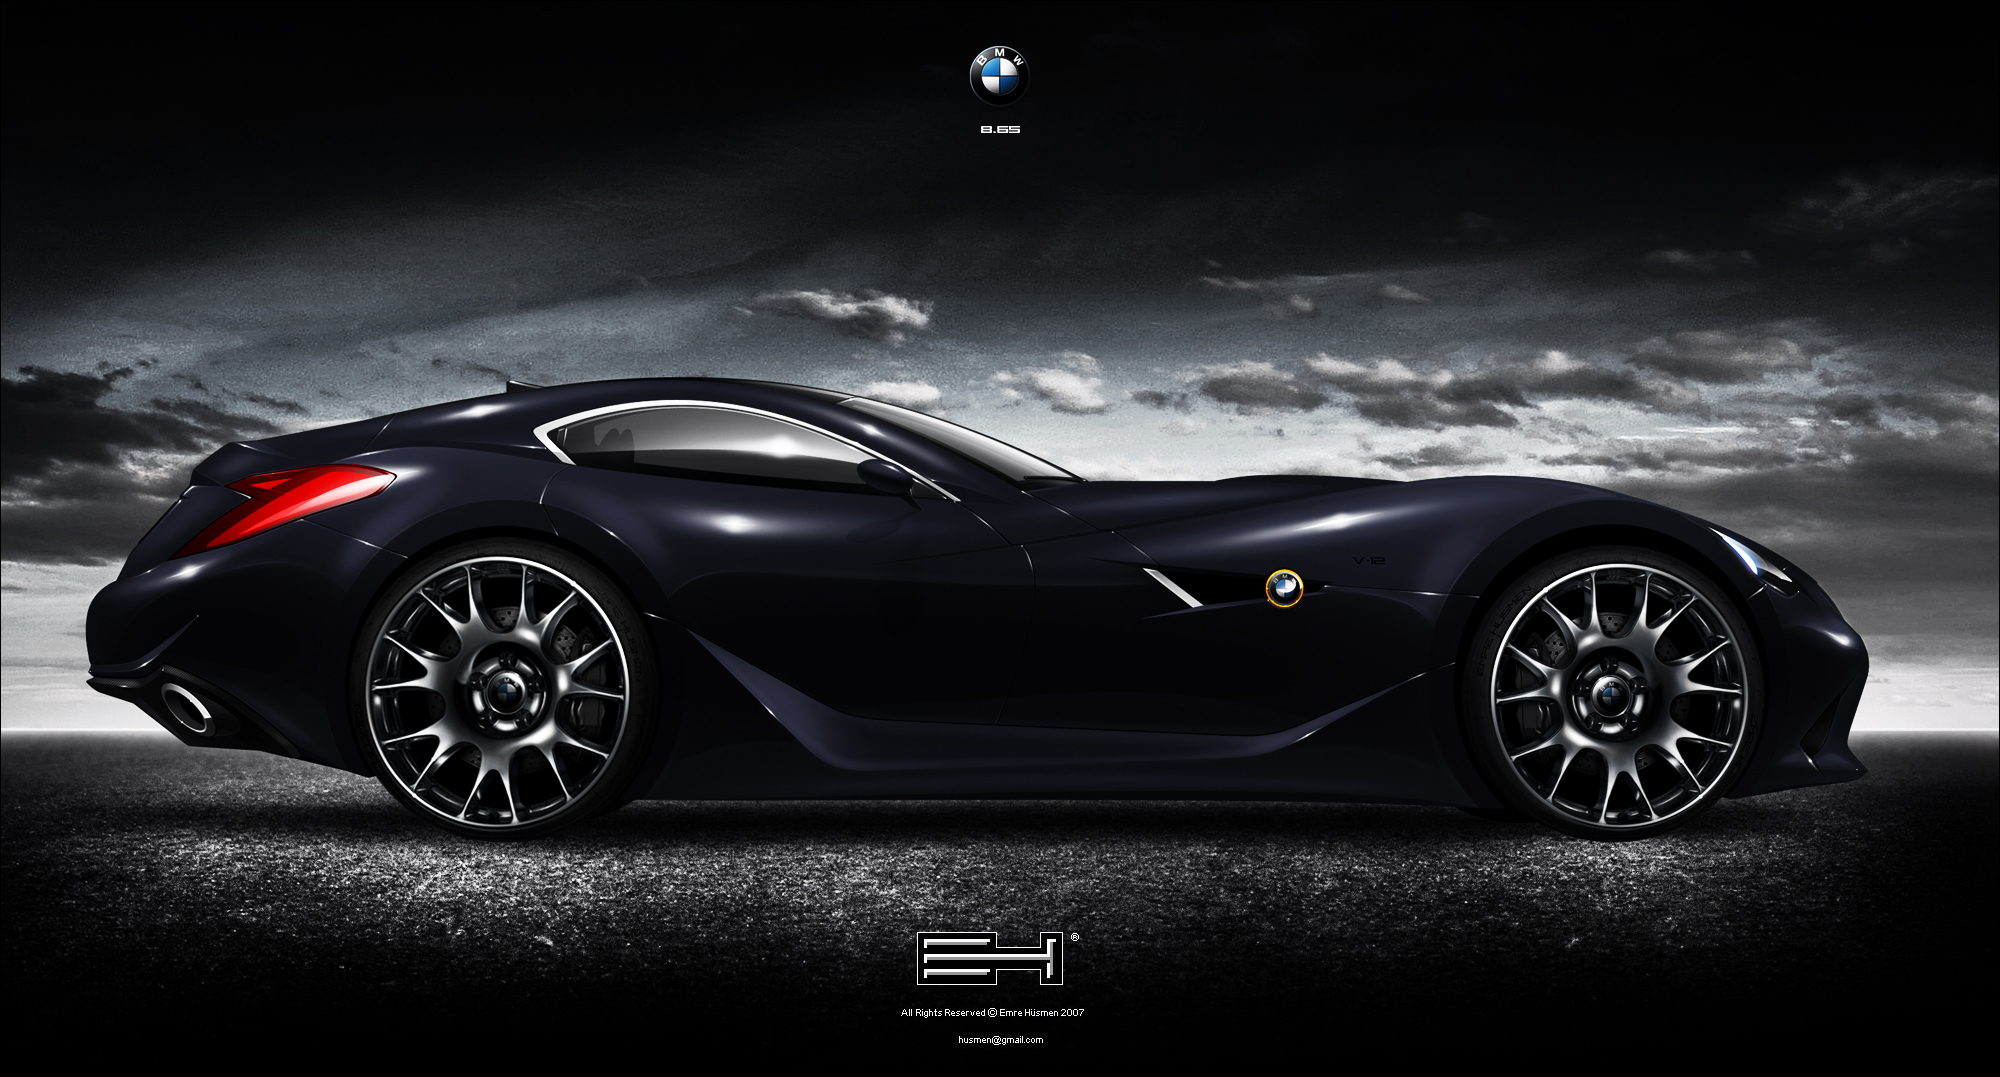 Cars Wallpapers: Best BMW Wallpapers For Desktop & Tablets In HD For Download